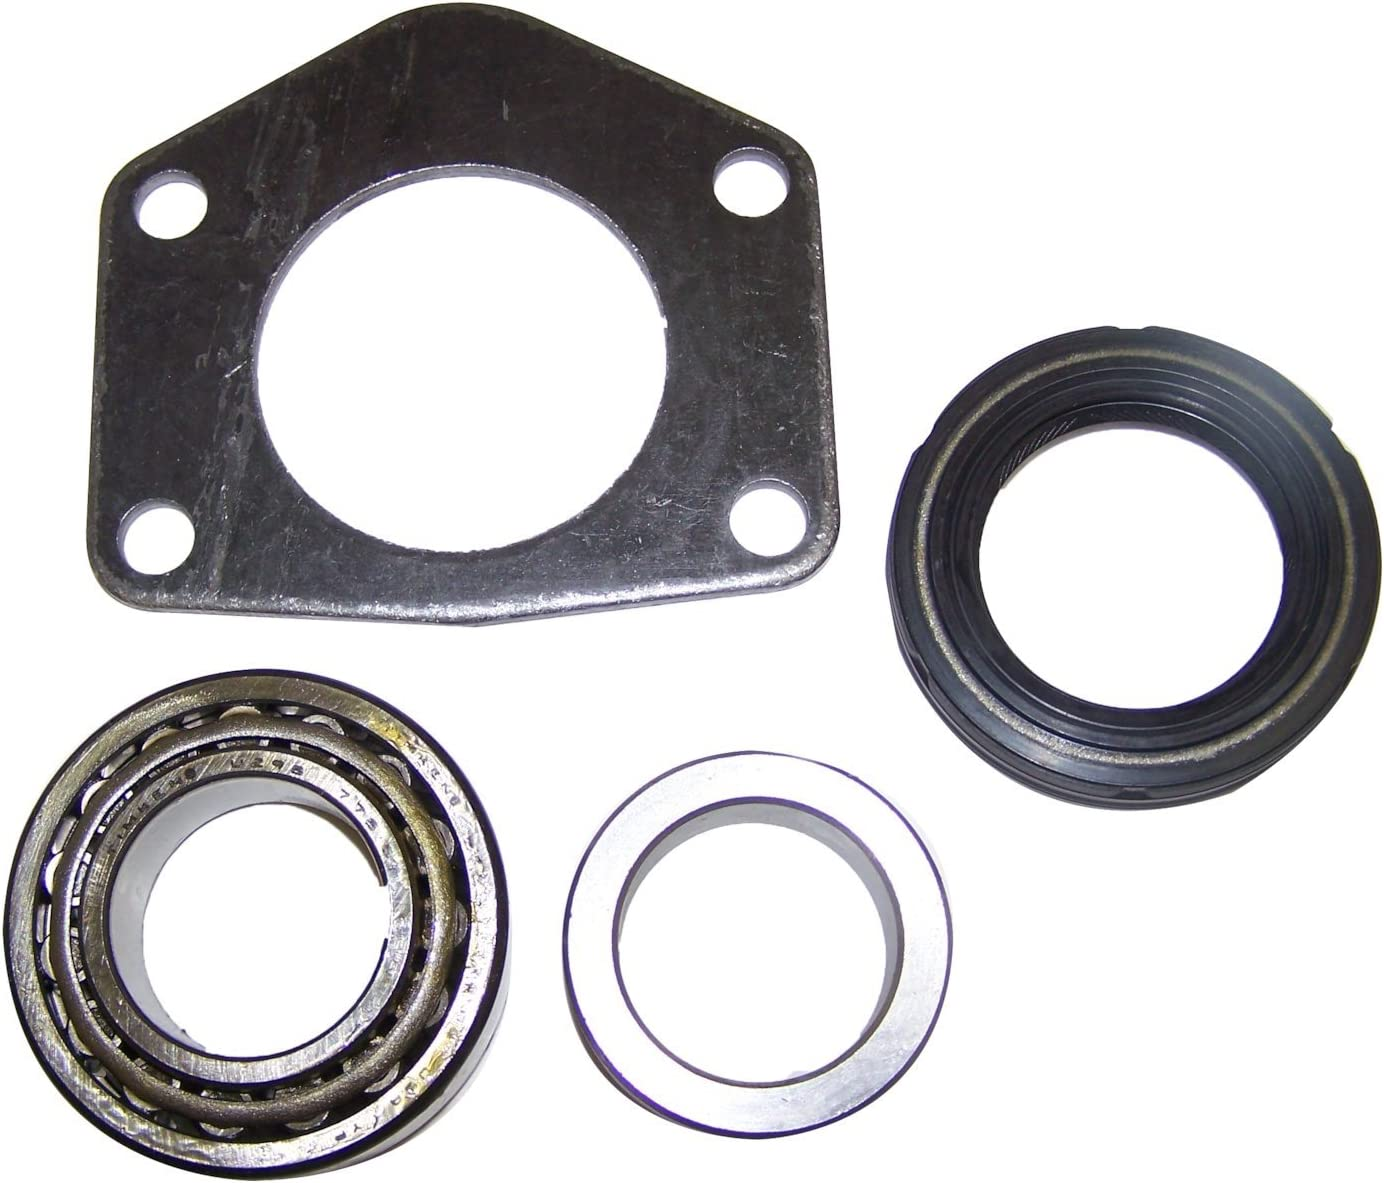 Crown Automotive 83501451 Free shipping on posting reviews latest Rear Axle Kit Retainer Bearing and